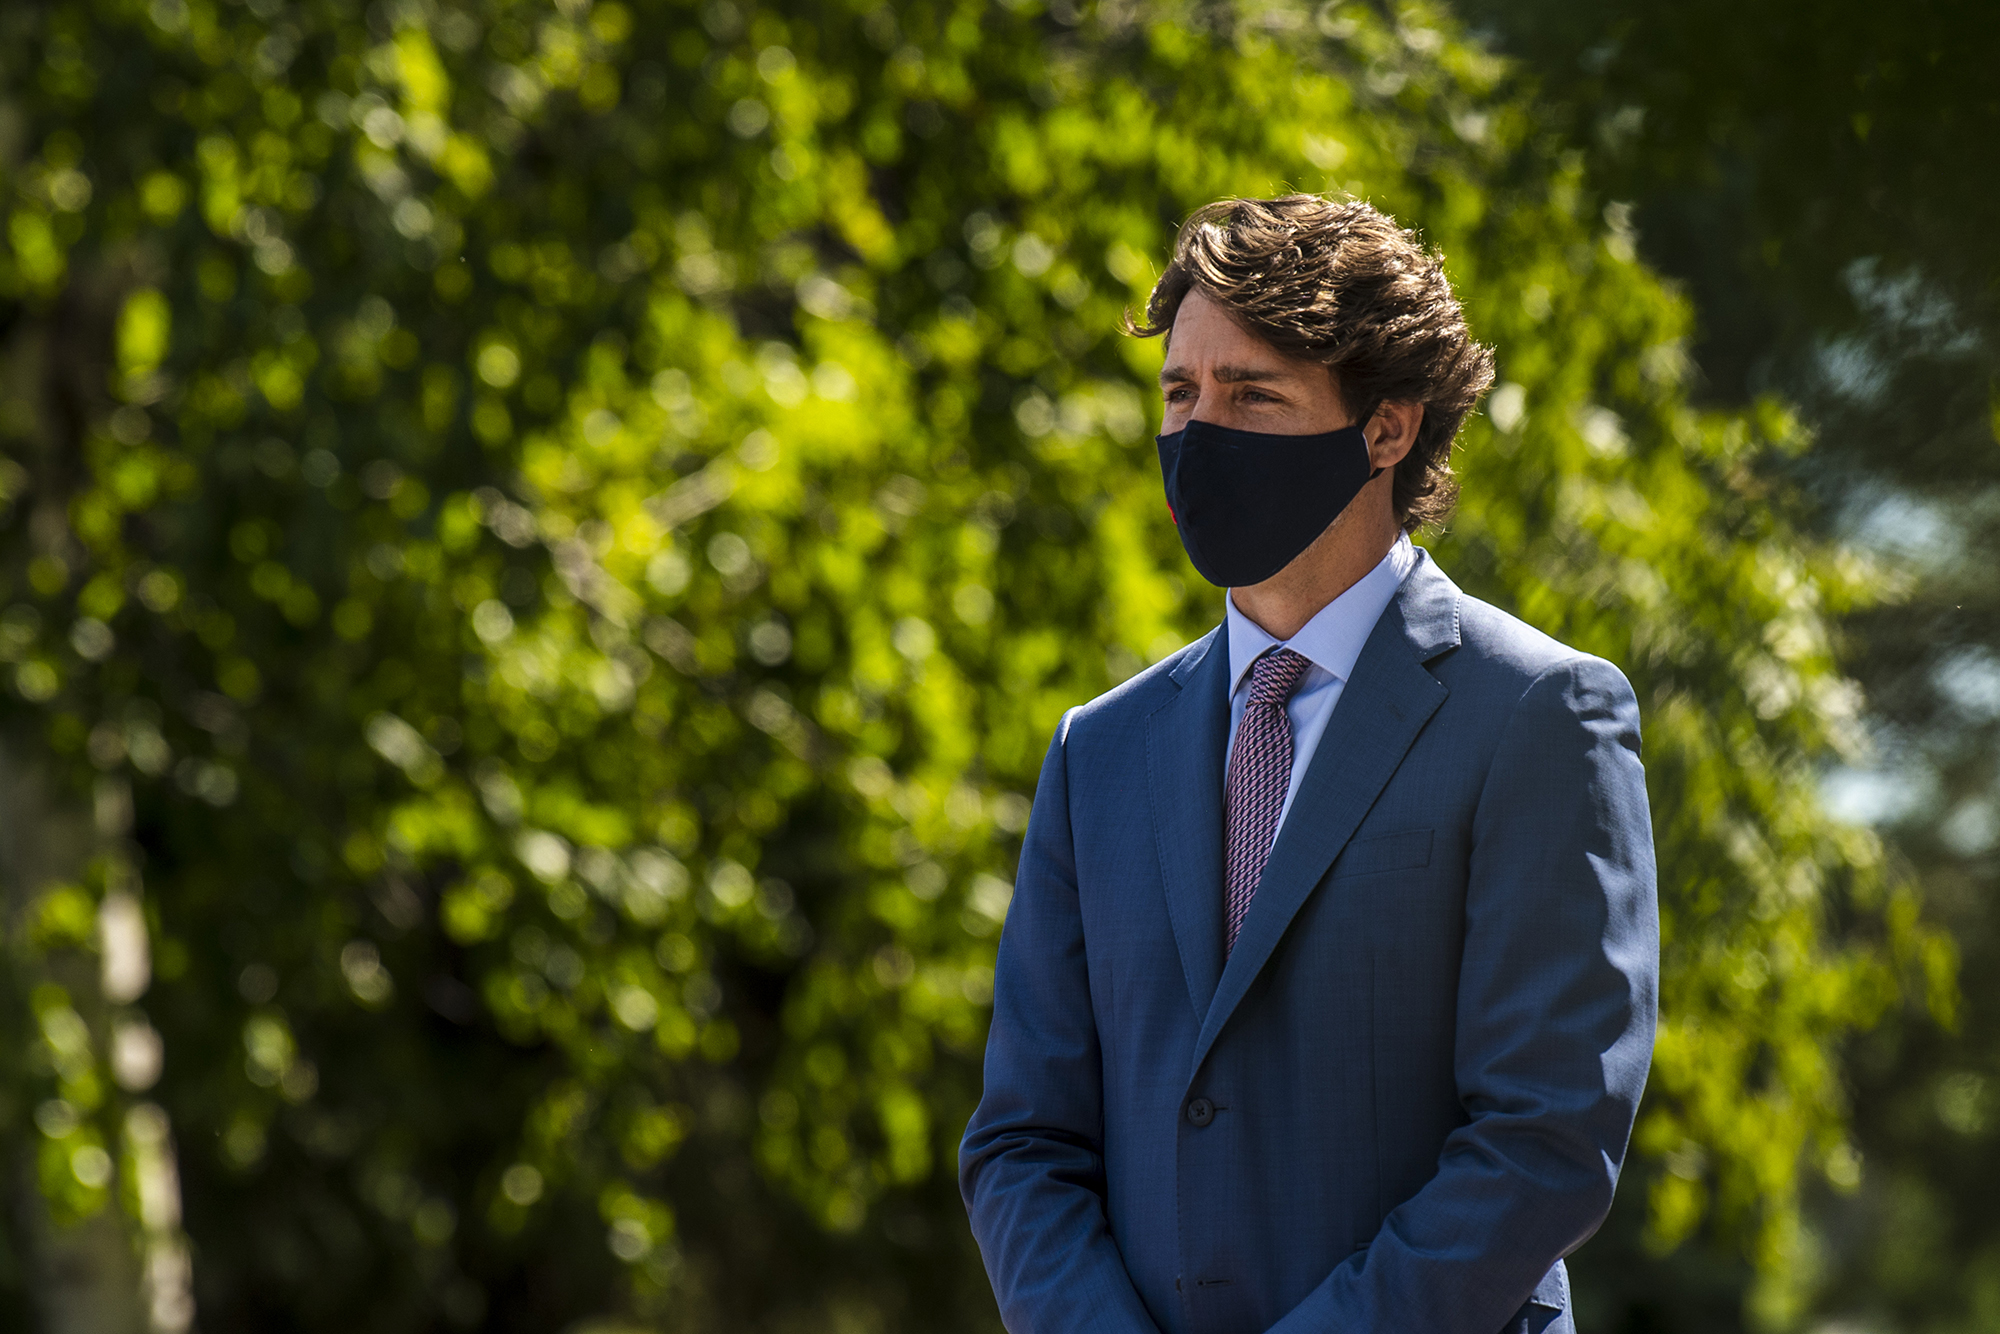 Justin Trudeau, Canada's prime minister, waits to speak at the National Research Council of Canada Royalmount Human Health Therapeutics Research Centre facility in Montreal on Monday, Aug. 31.